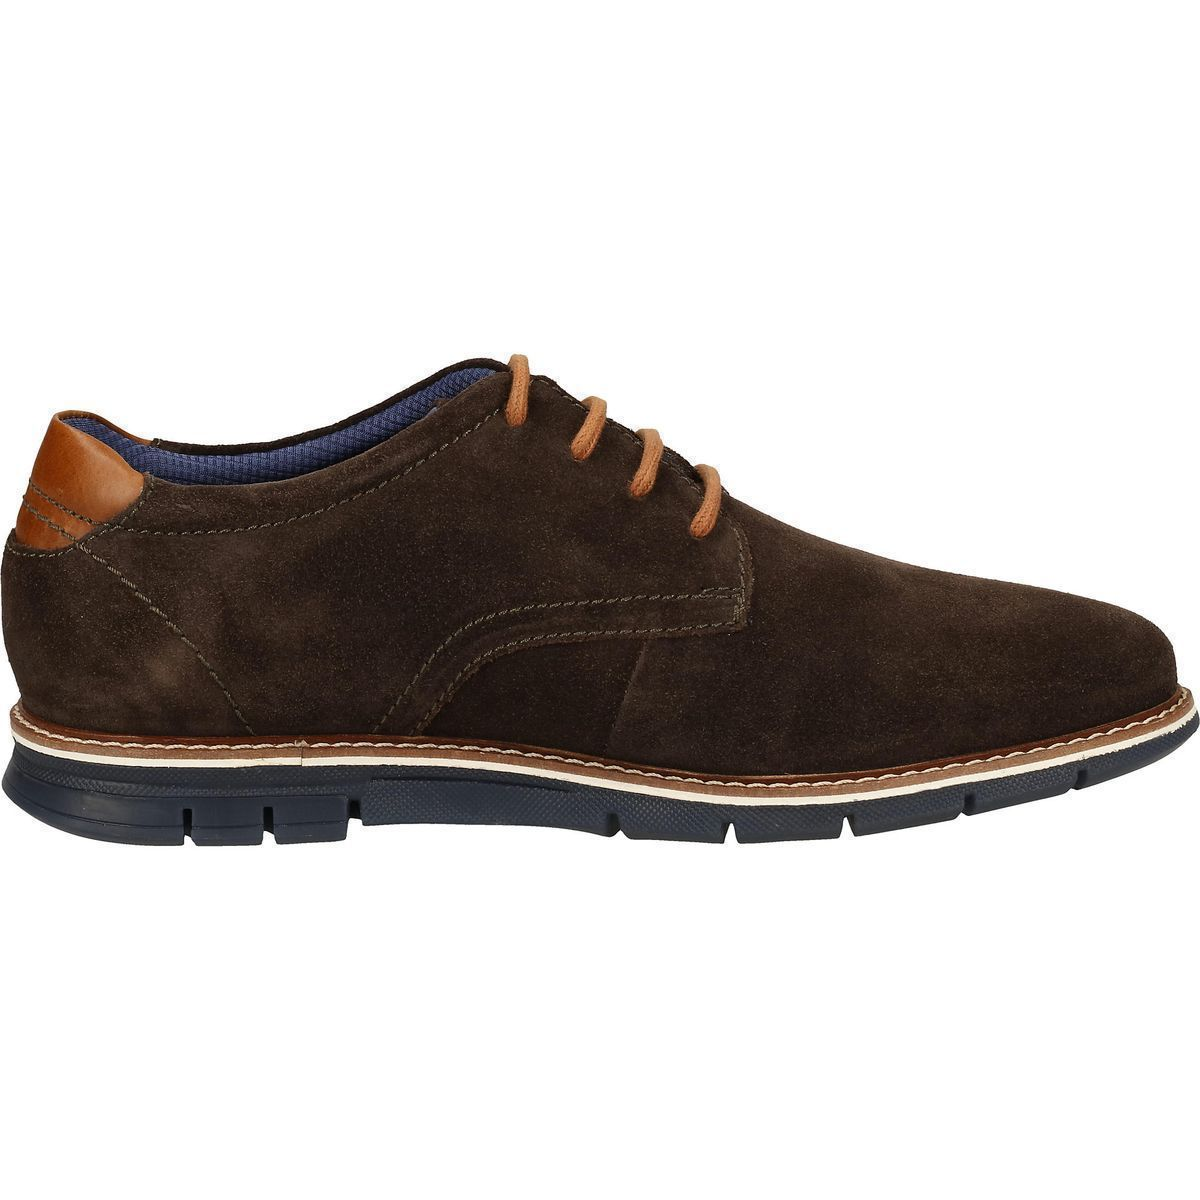 KICK COL FOUR ALDEN:MARRON/CUIR/TEXTILE/SYNTHETIQUE/Marron